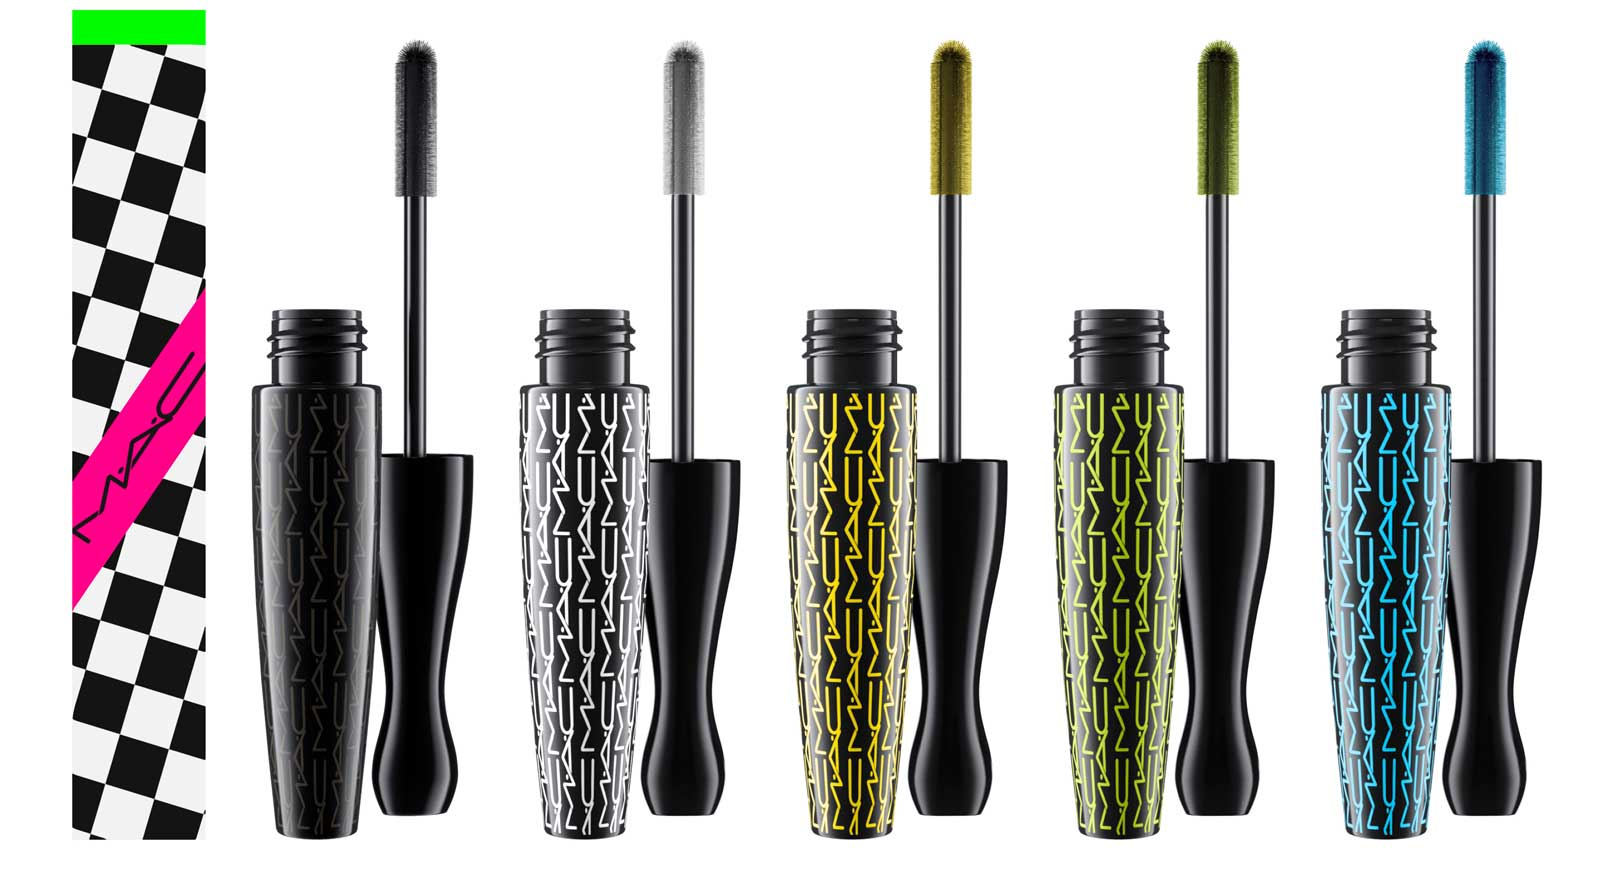 3-mac-work-it-out-mascara